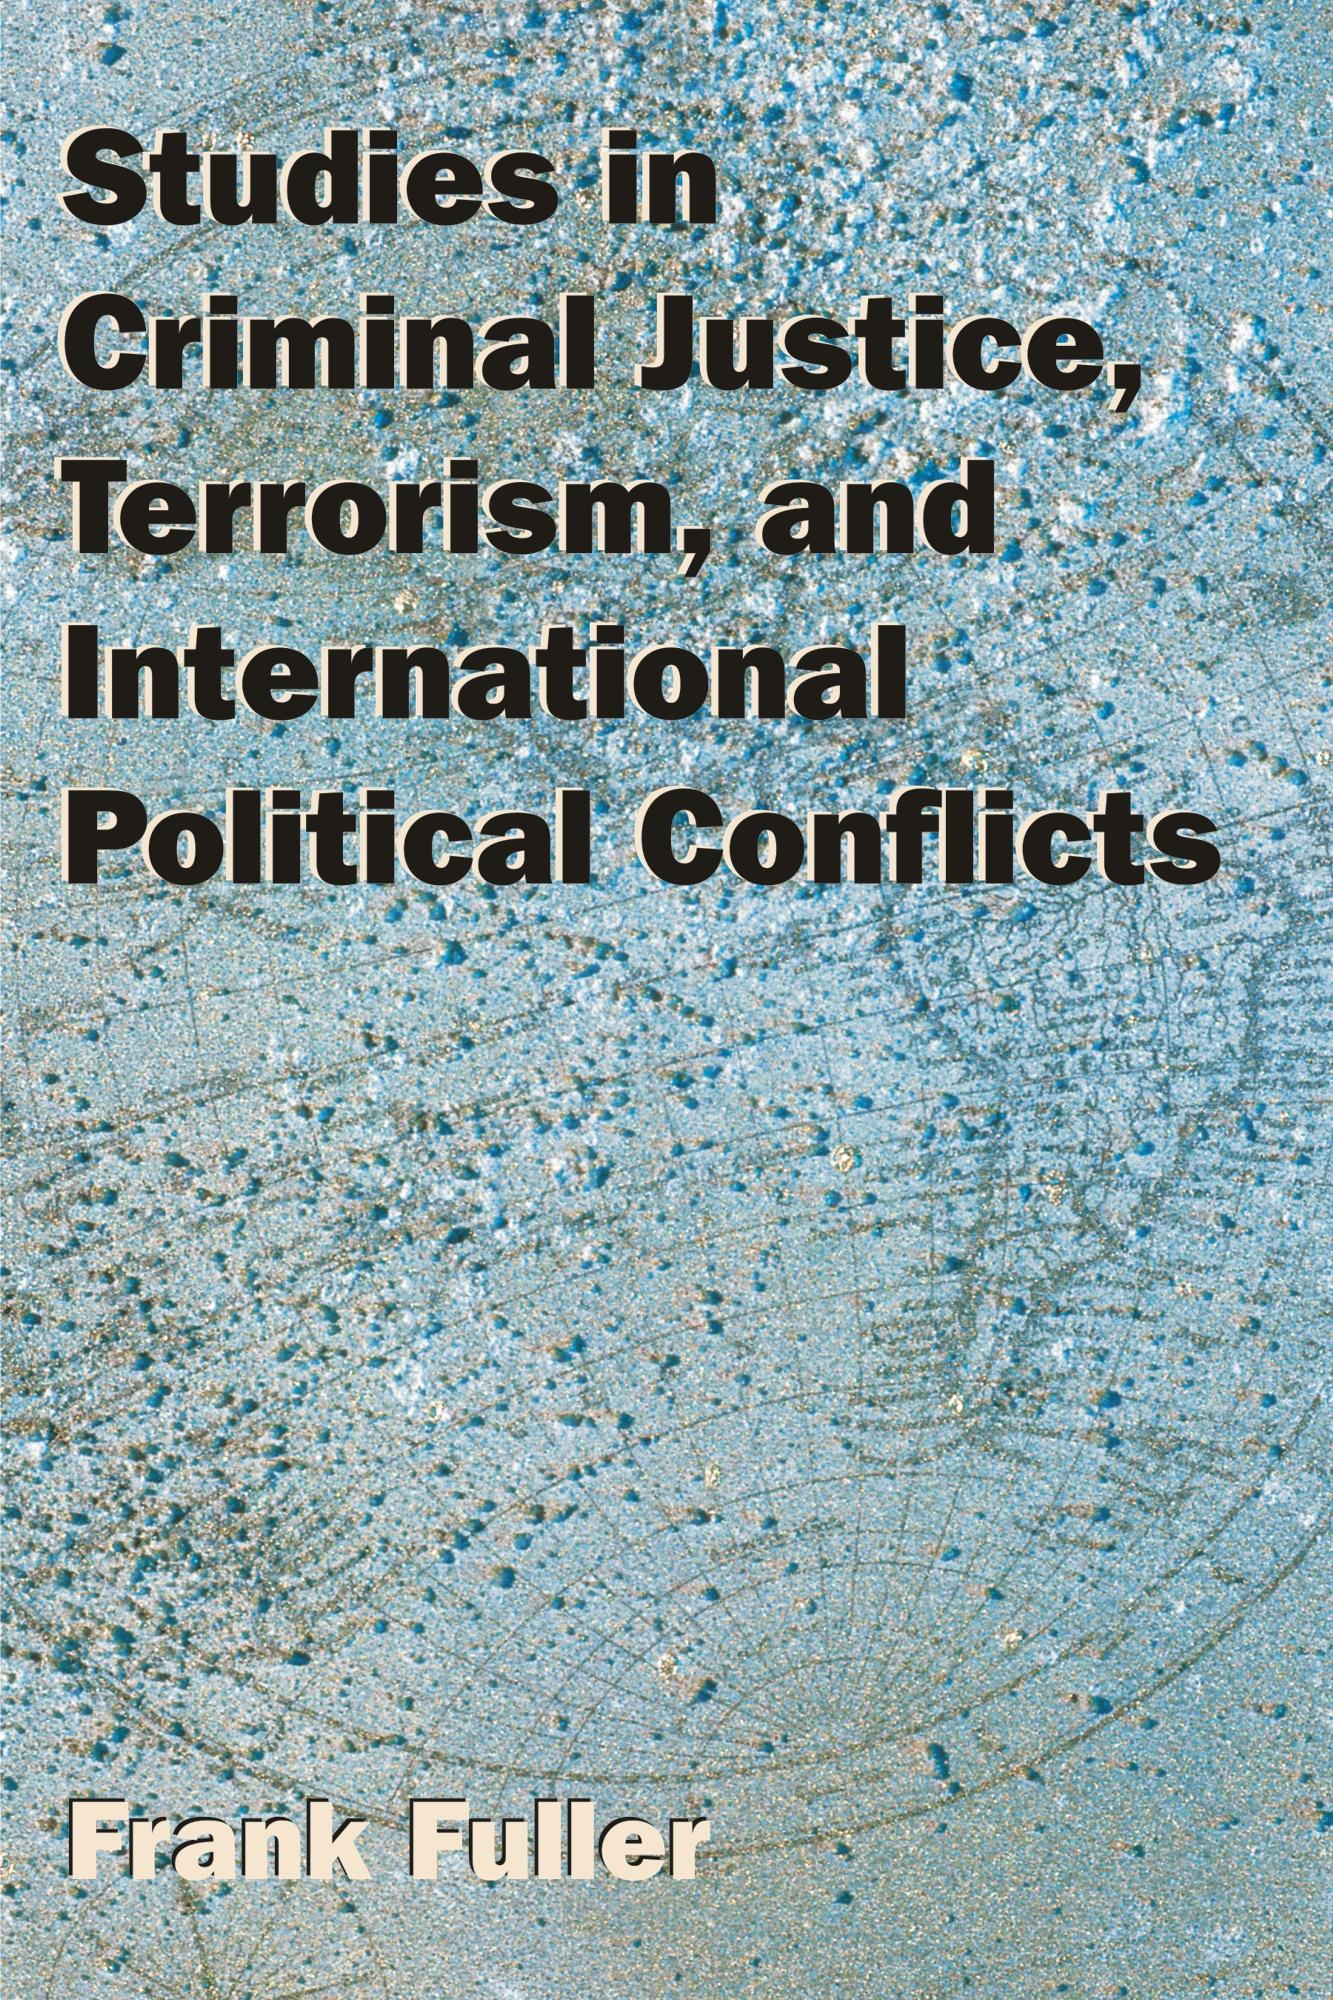 Studies in Criminal Justice, Terrorism, and International Political Conflicts EB9781599429205